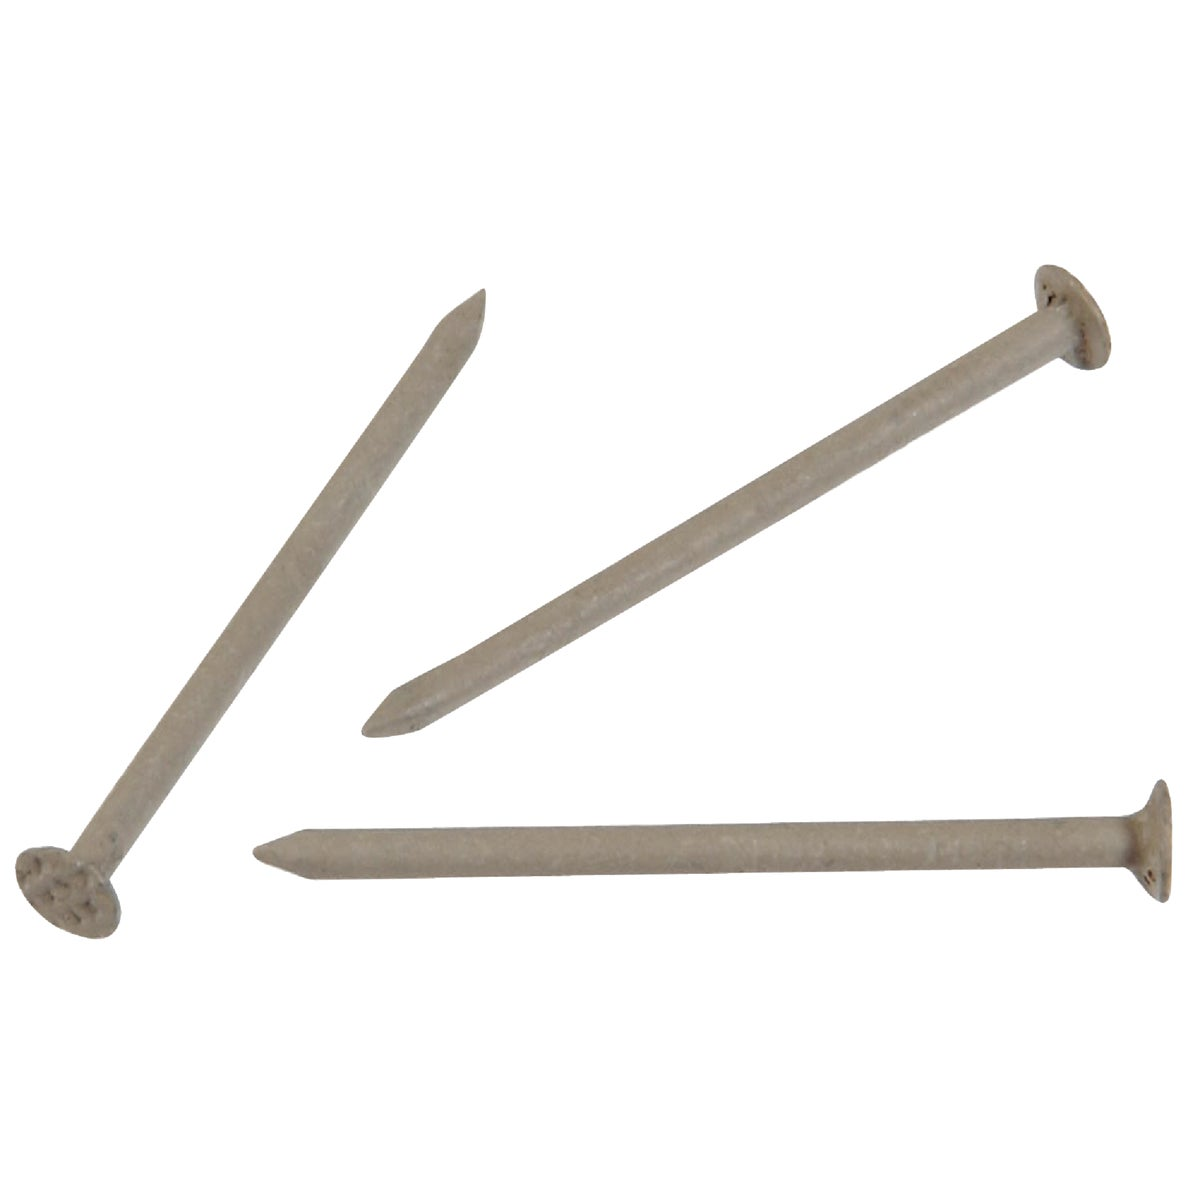 "1-1/4"" CLAY SS TRIM NAIL - 42077 by Hillman Fastener"